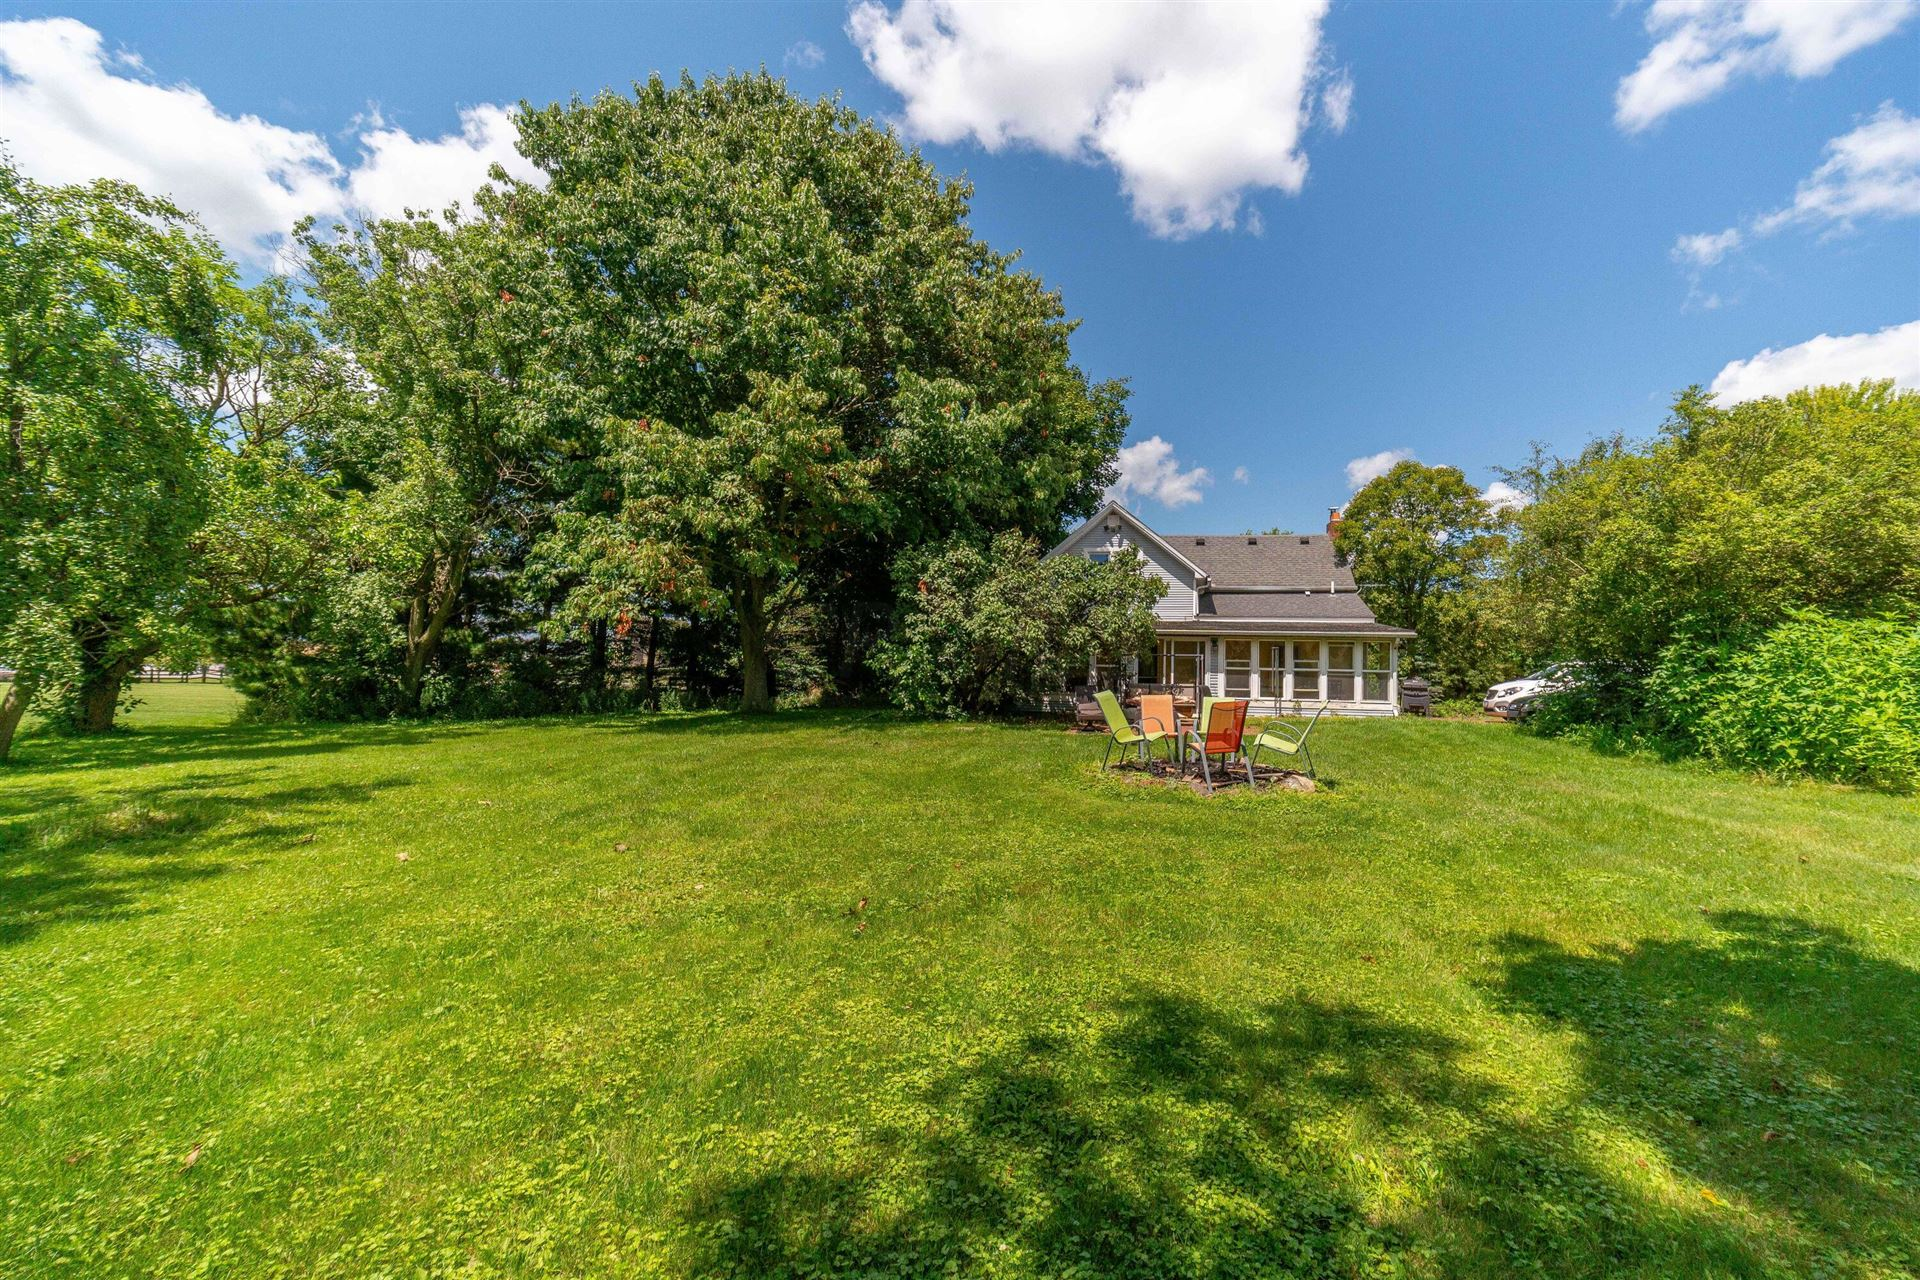 Photo of 4098 Hickory Rock Drive, Powell, OH 43065 (MLS # 221039028)